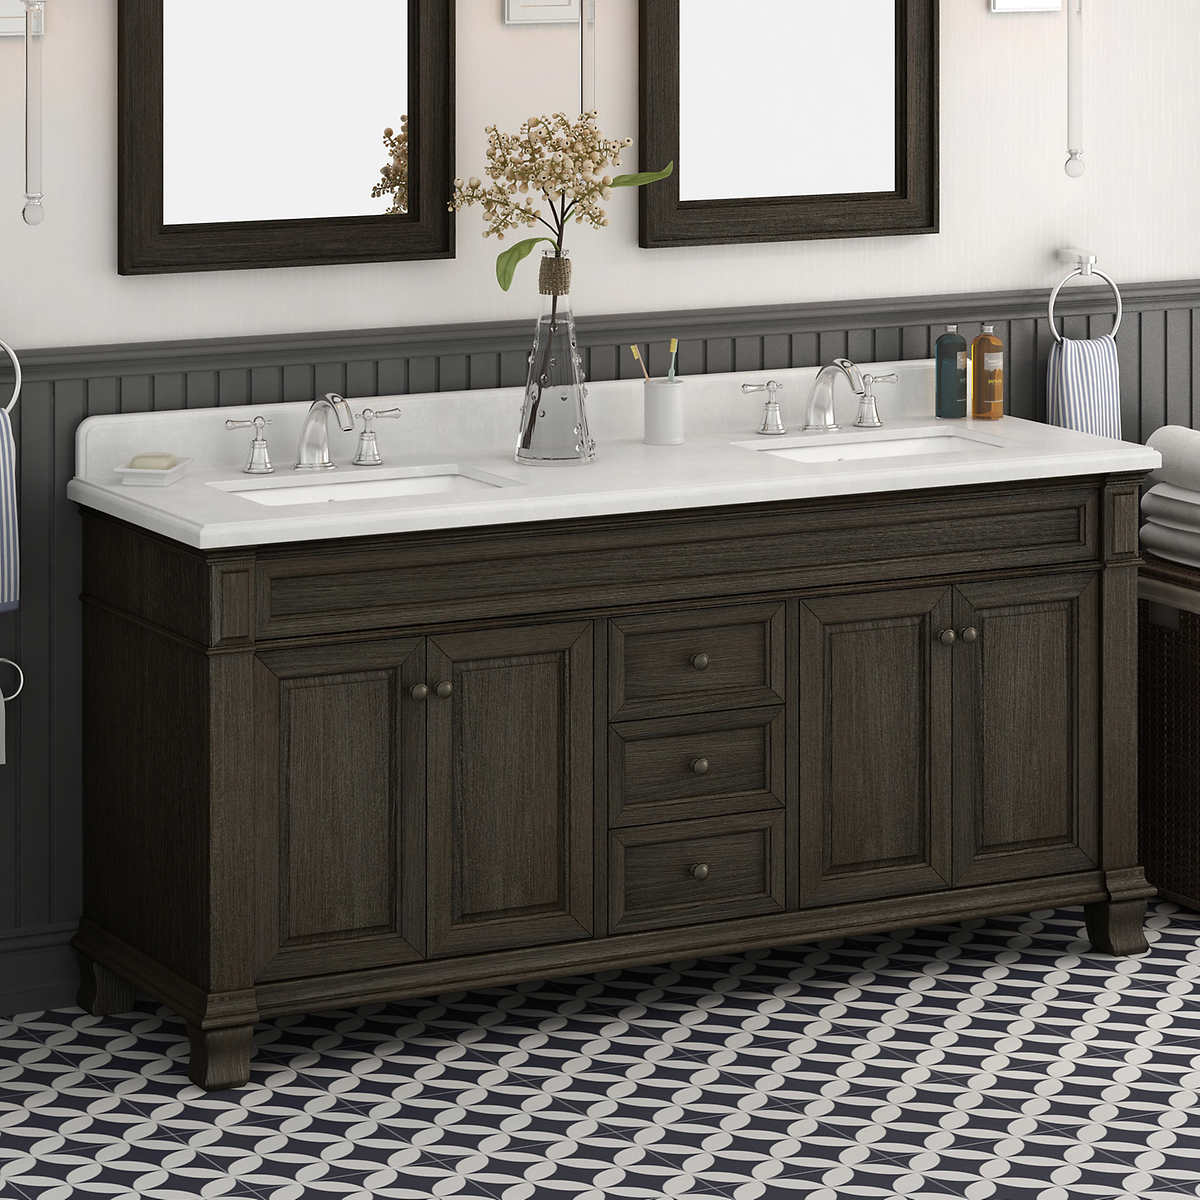 Bathroom Vanity Combos Sale double sink vanities | costco